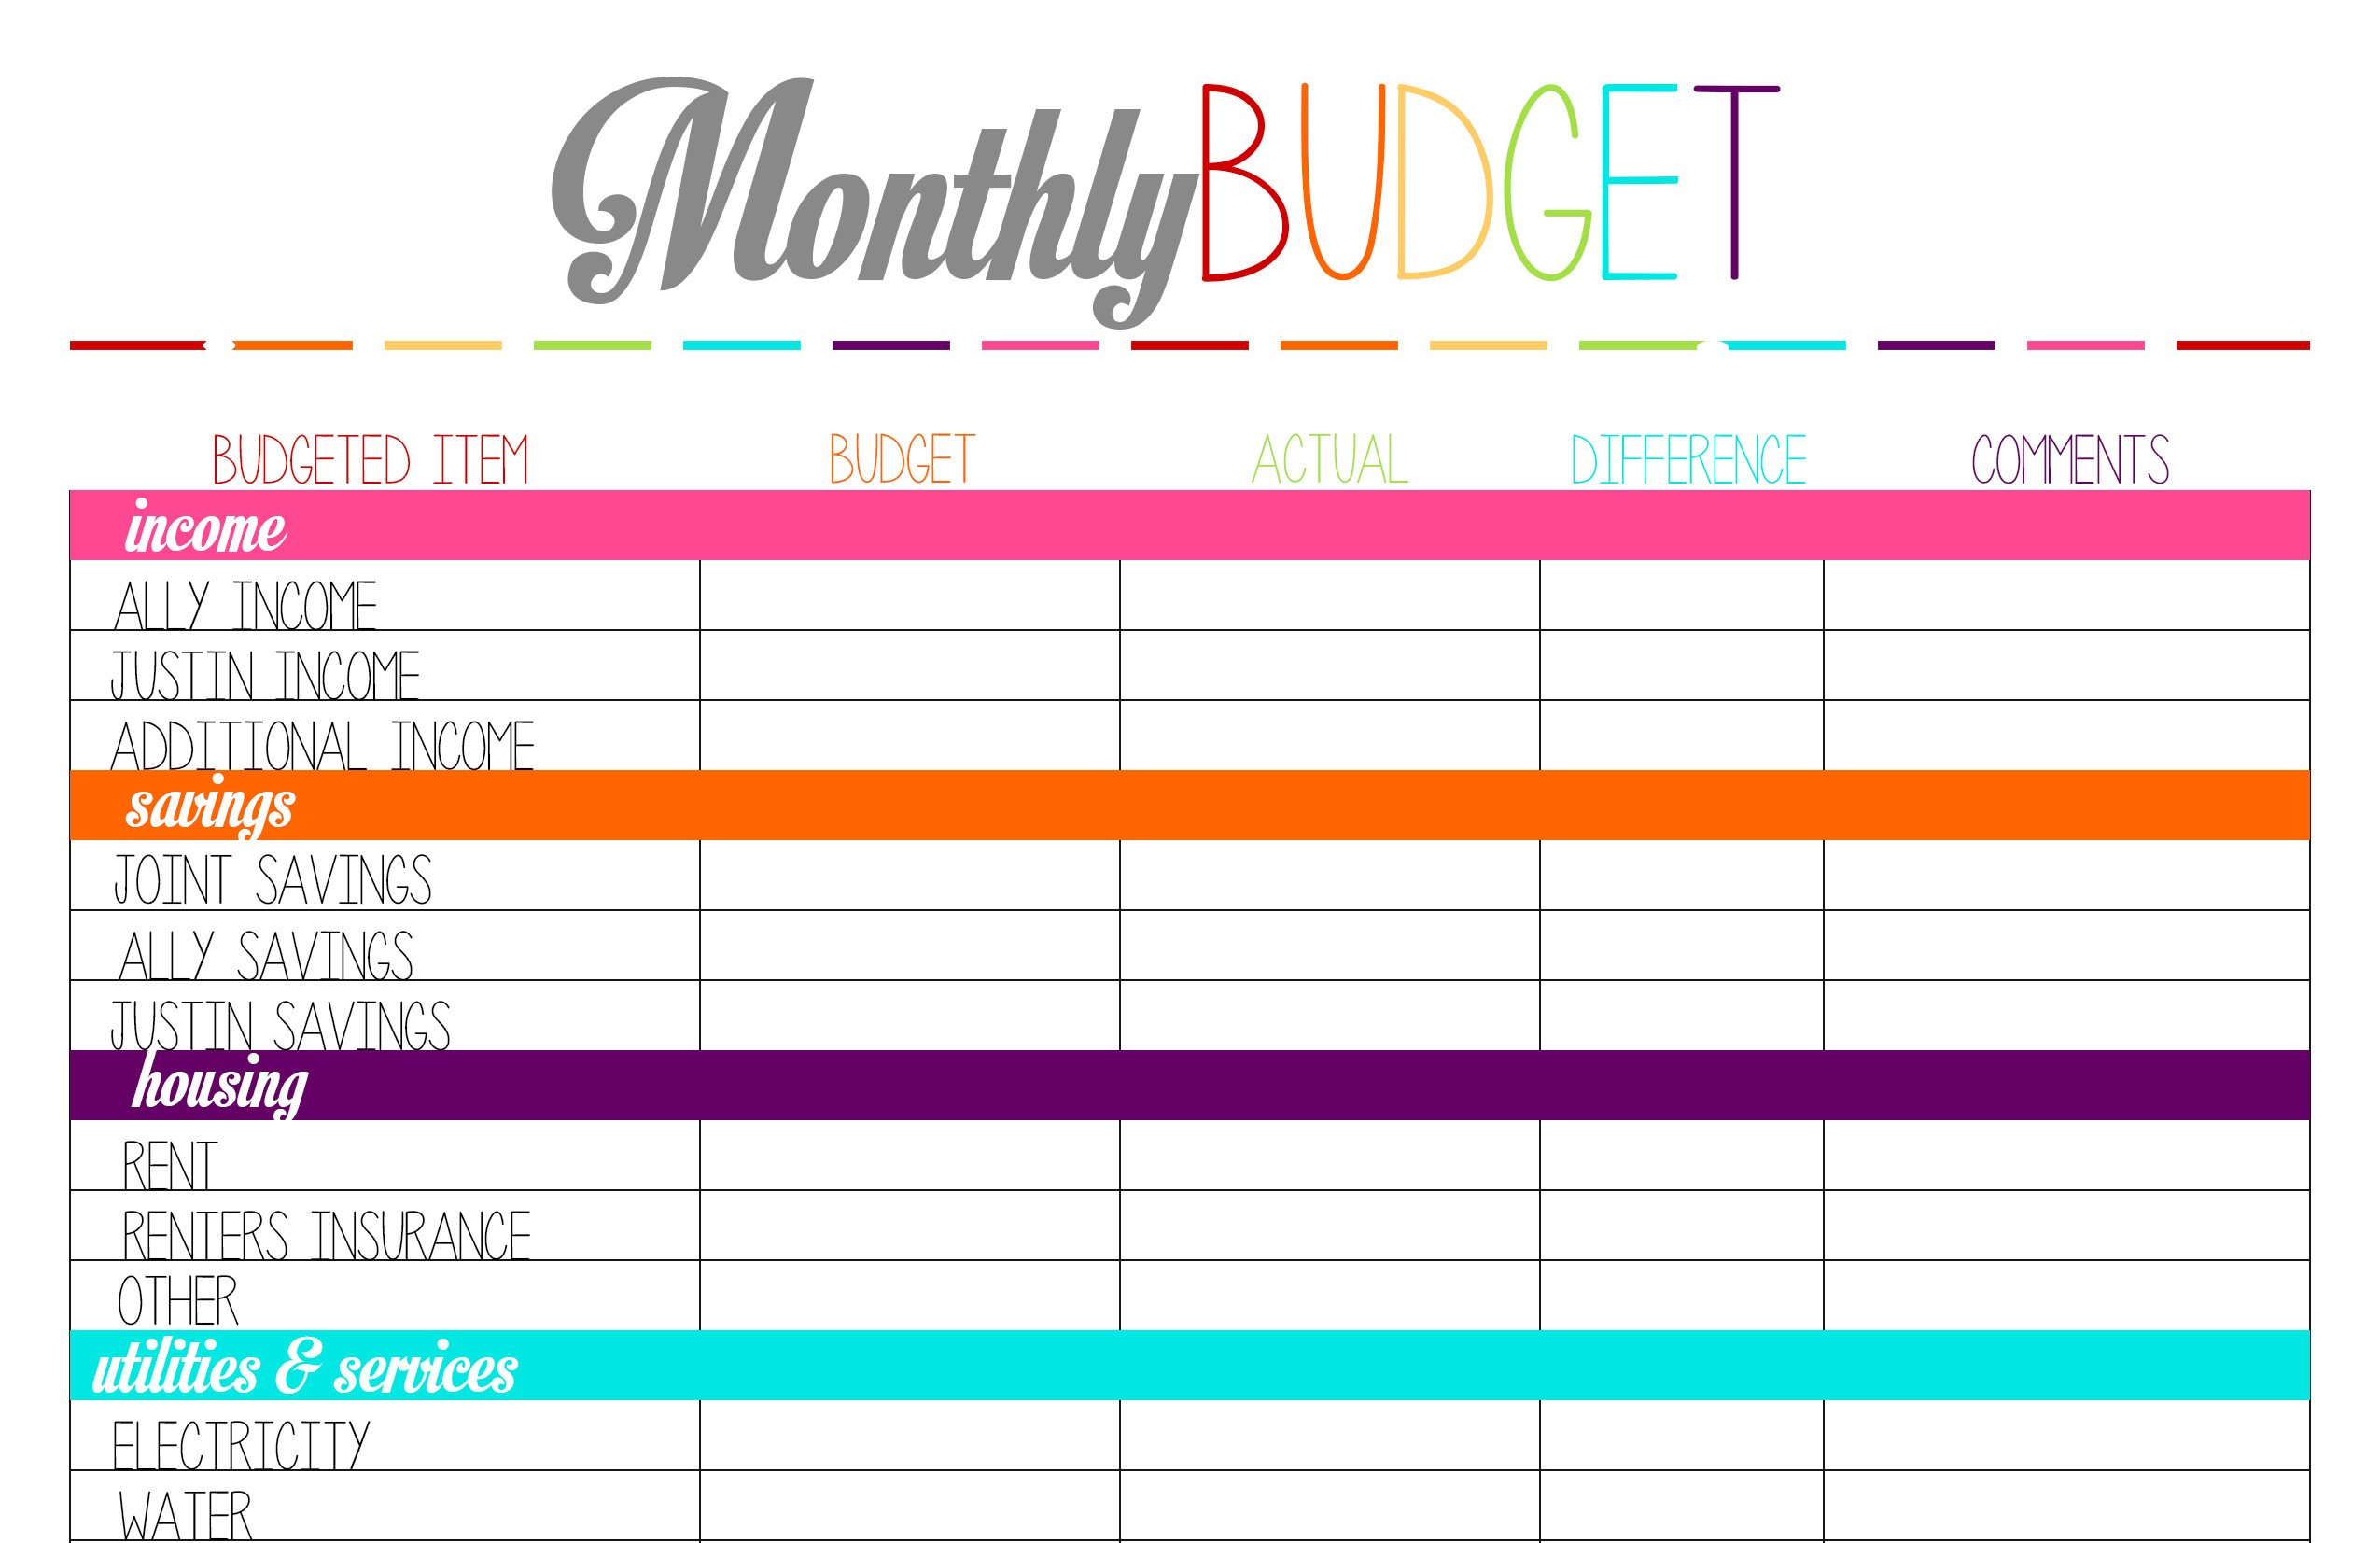 Free Household Budget Template top 5 Posts Of 2014 – Ally Jean Blog